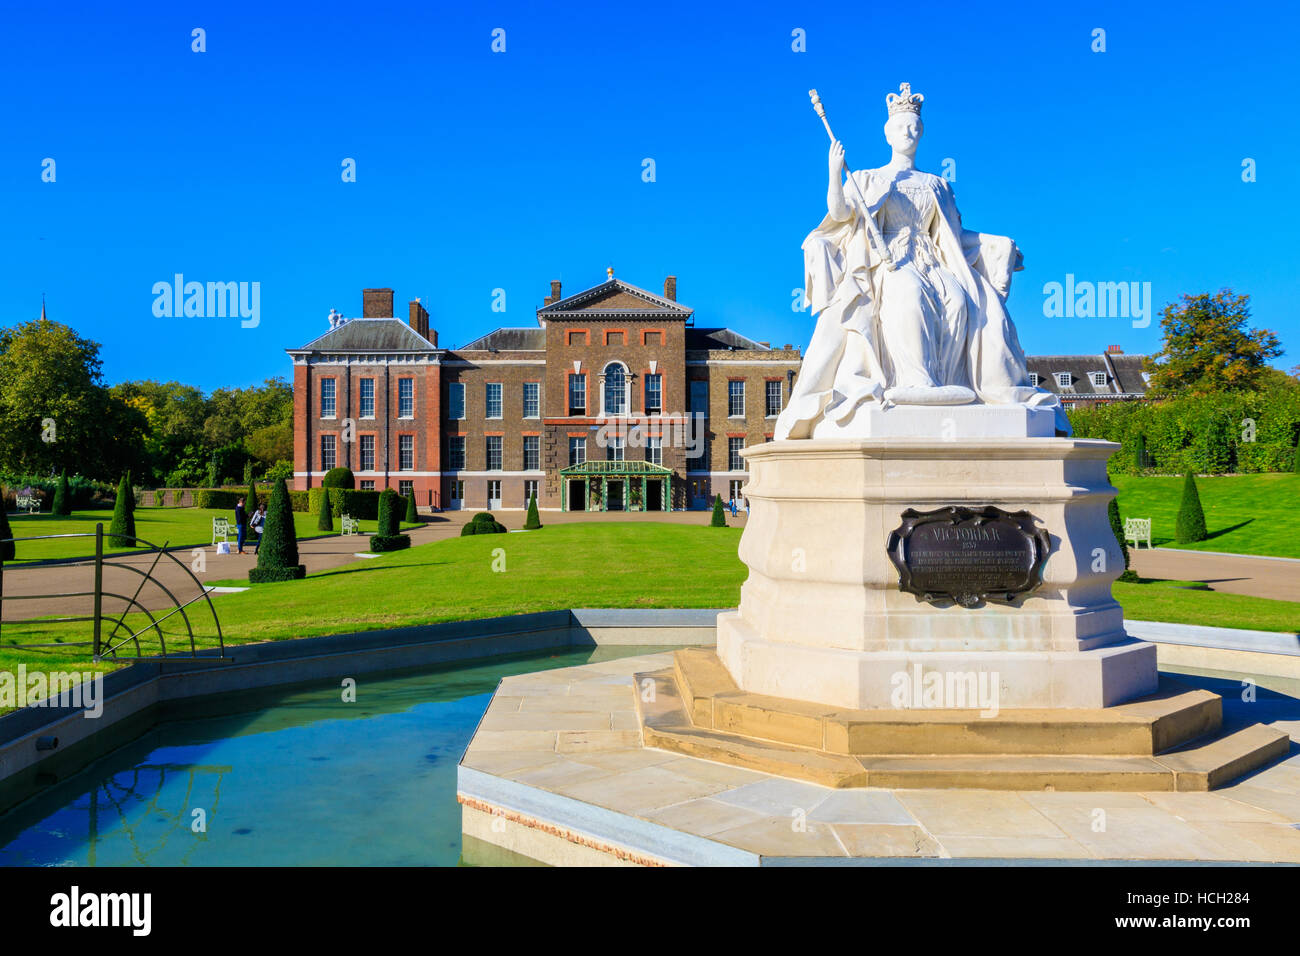 Statue de la reine Victoria et de Kensington Palace à Londres Photo Stock